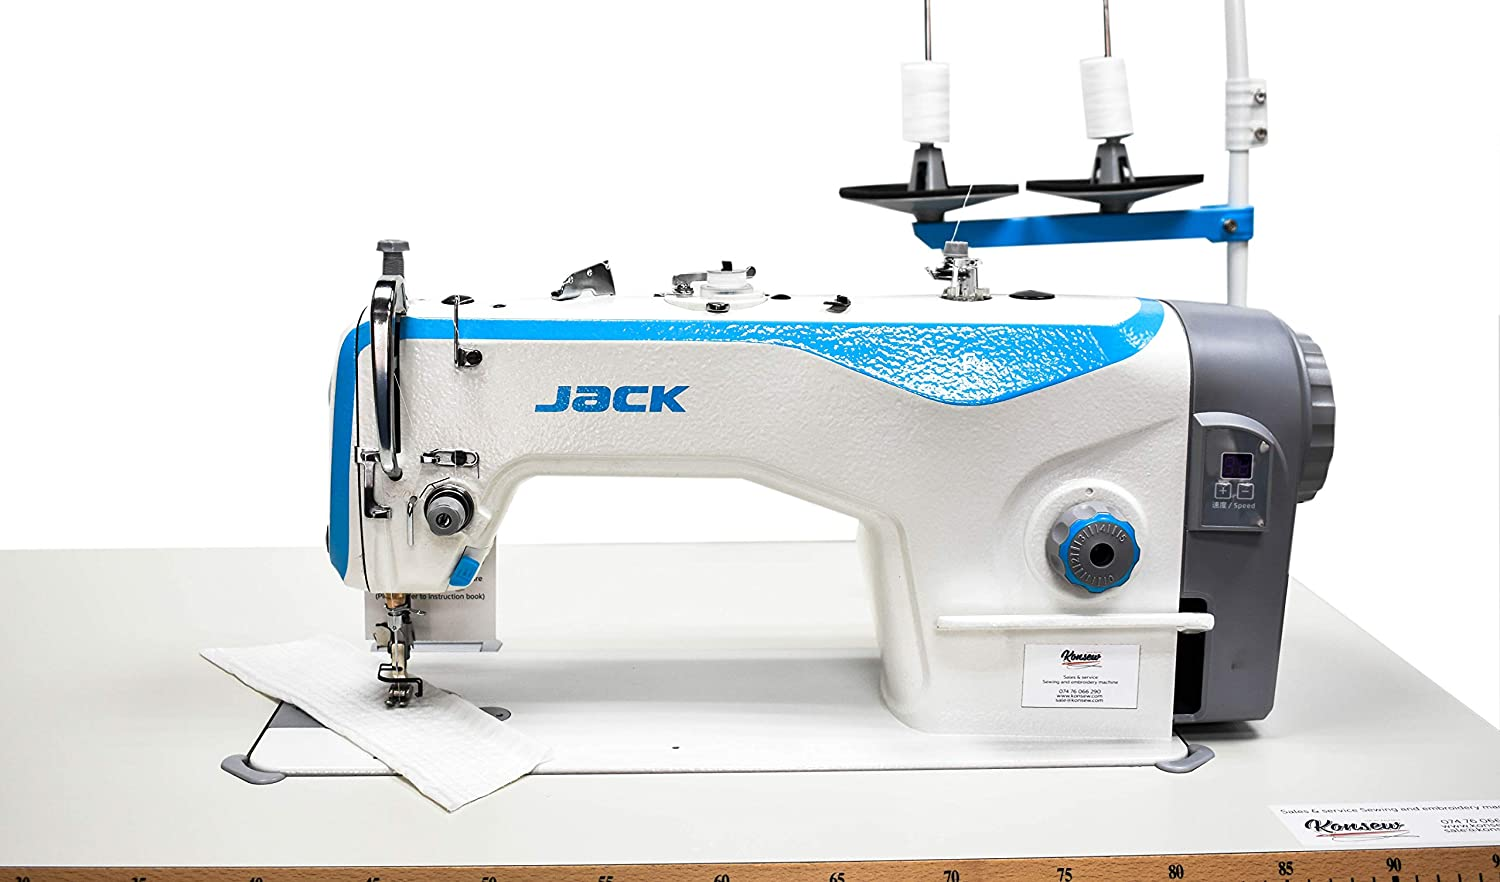 Jack F 4 Direct Drive Lockstitch - Máquina de coser industrial ...